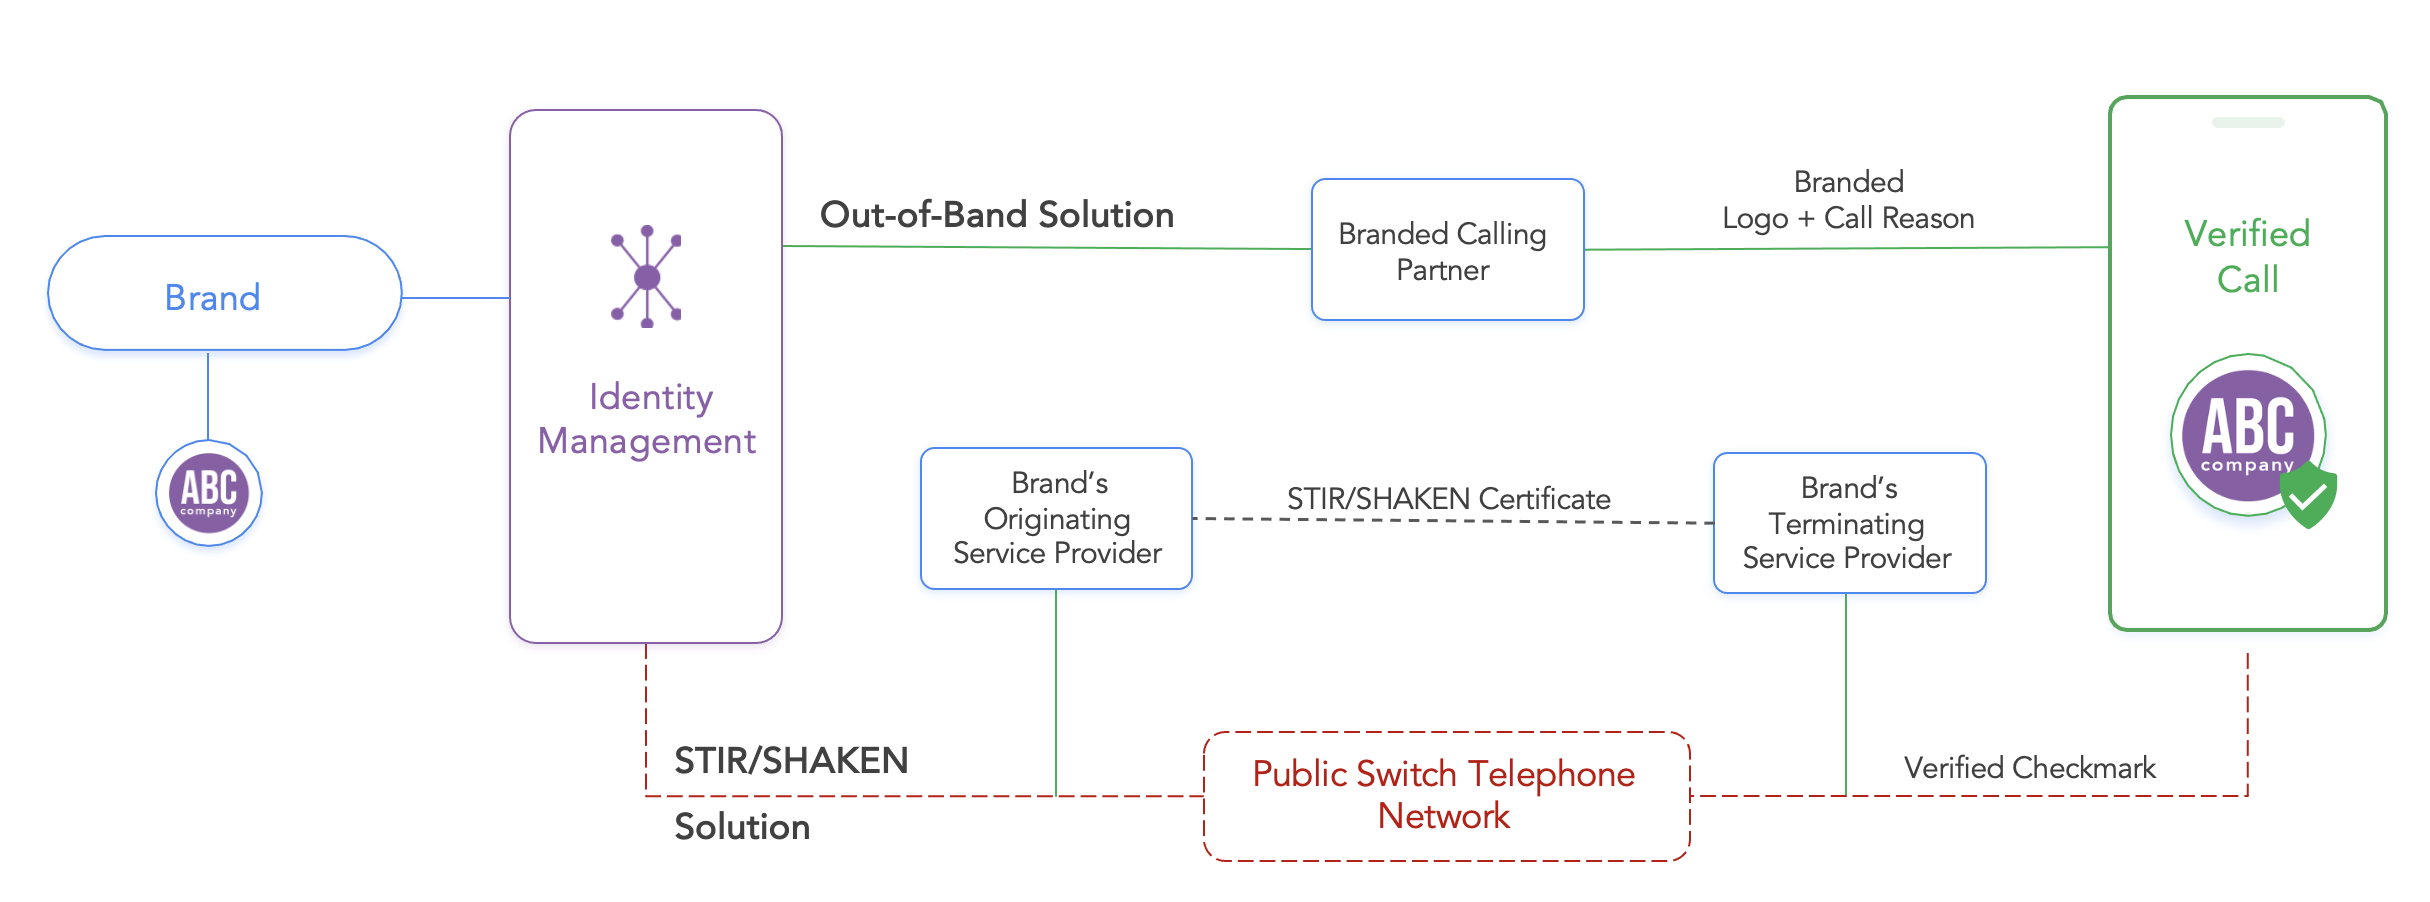 Out-of-Band versus STIR/SHAKEN Solutions Flow chart